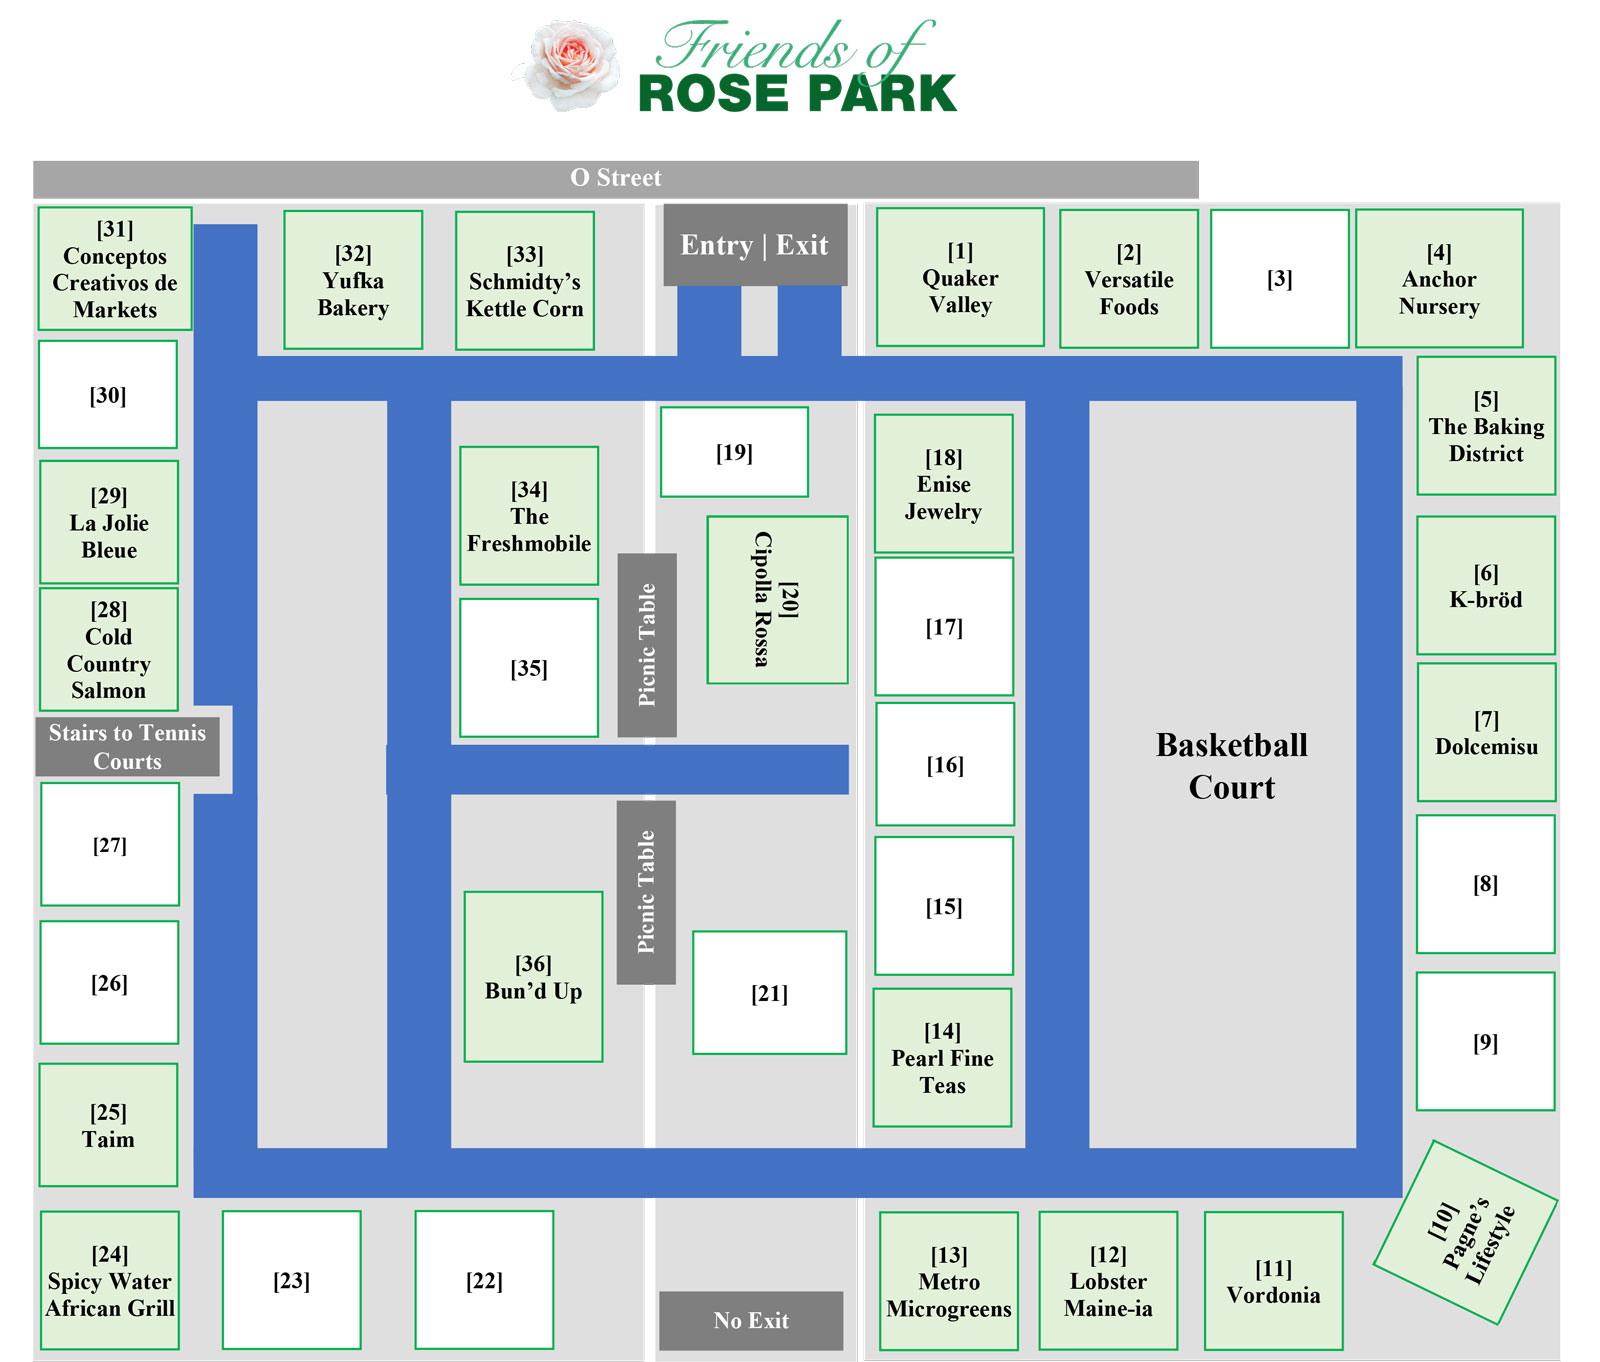 Friends of Rose Park Farmers Market Map for Wednesday, April 28, 2021